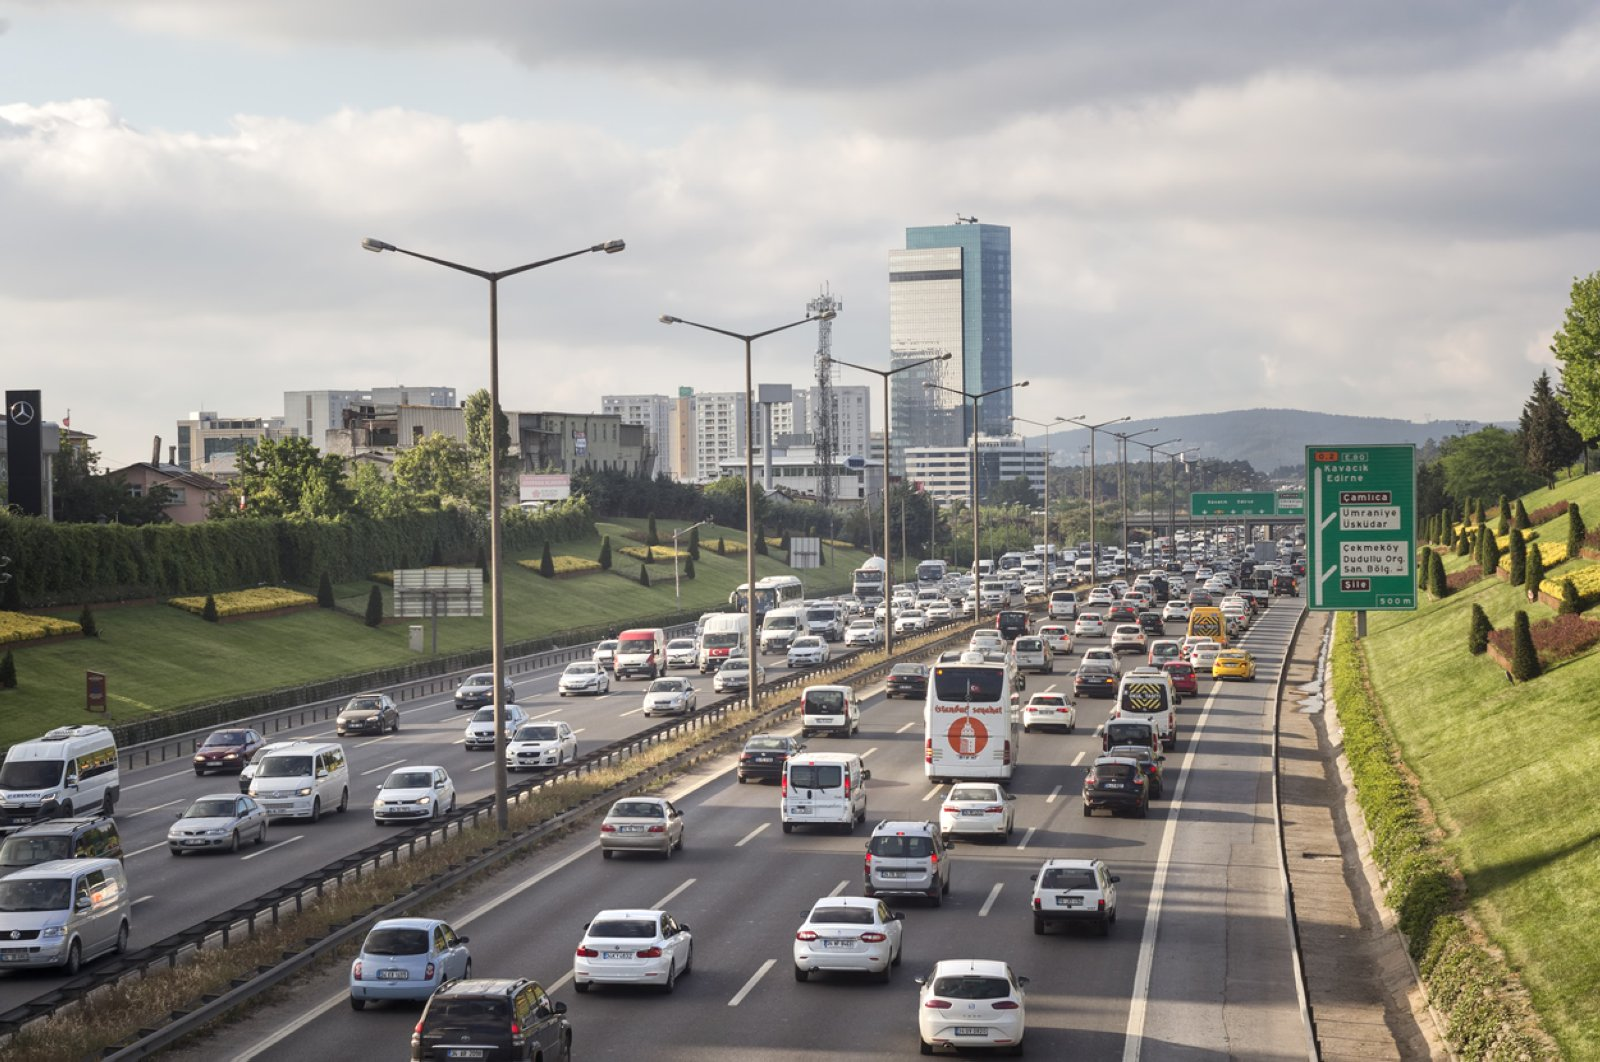 Traffic flows on a highway in Tepeüstü, a neighborhood of Istanbul's Ümraniye district, Turkey, May 15, 2017. (iStock Photo)